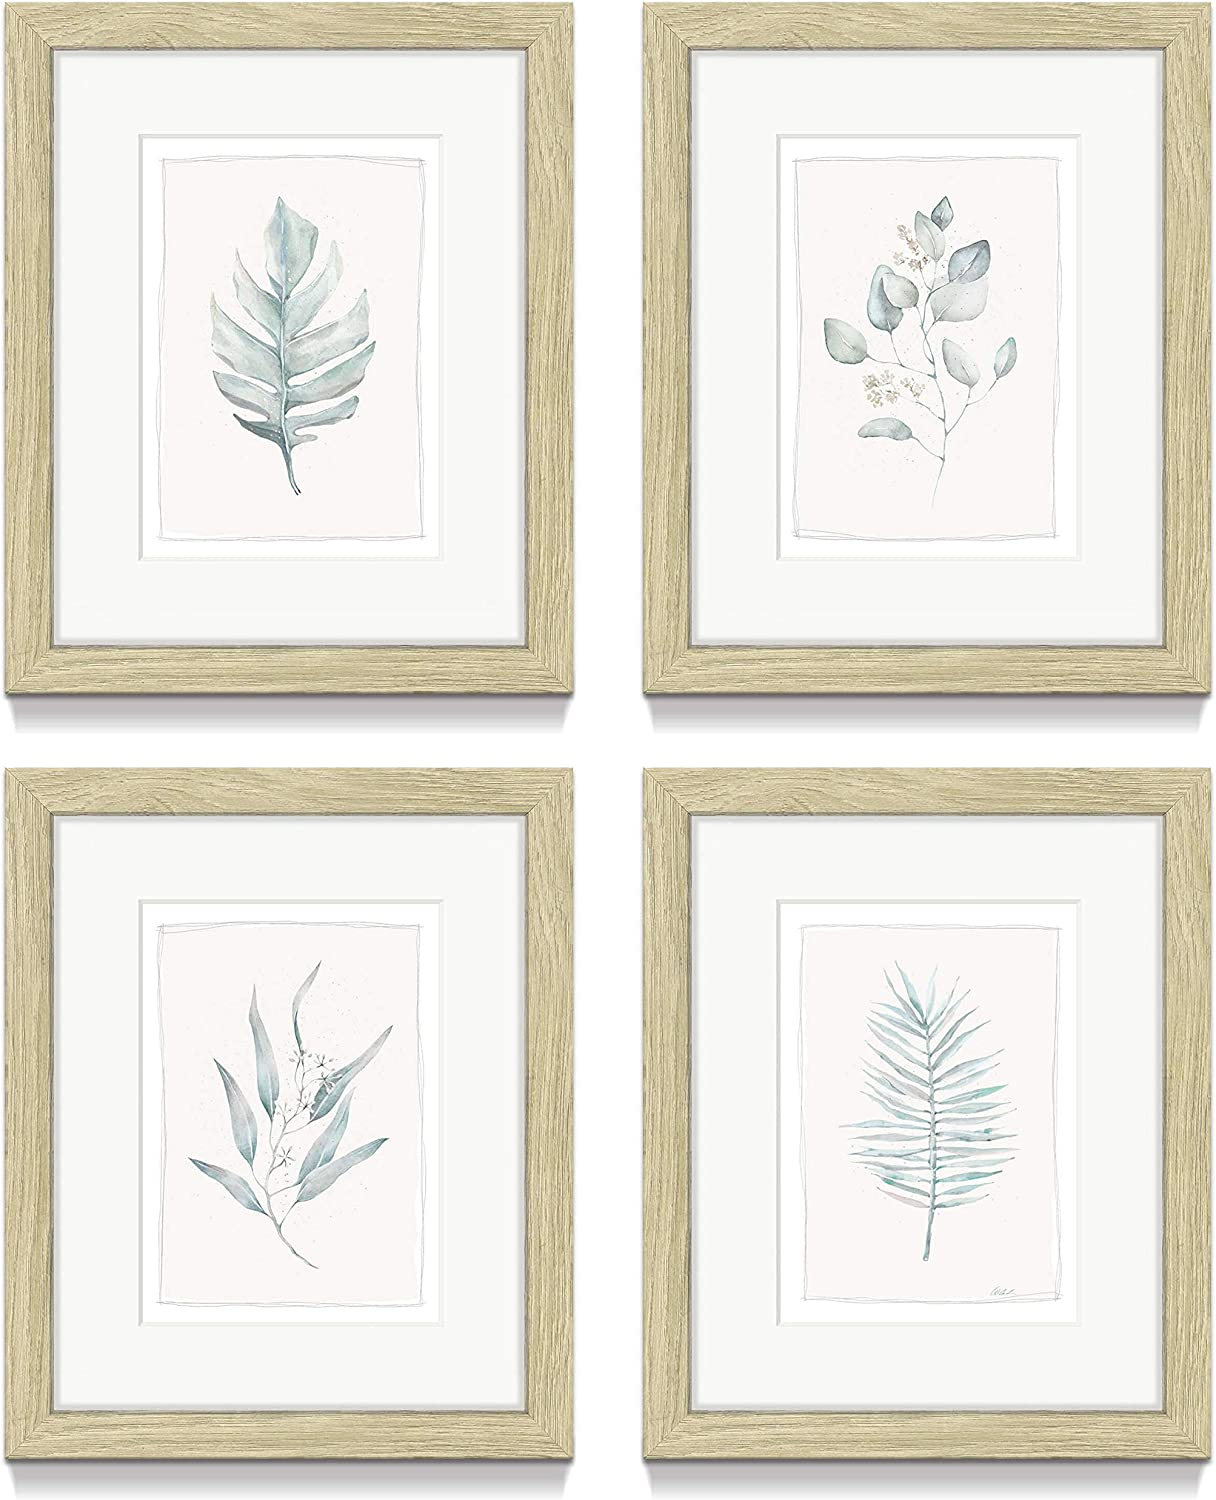 Minimalist Leaf Framed Wall Art – Set of 4 Simple Aesthetic Botanical Picture Prints with Beige Frame for Decor Contemporary Bedroom or Kitchen(8'' x 10'' x 4 Panels)